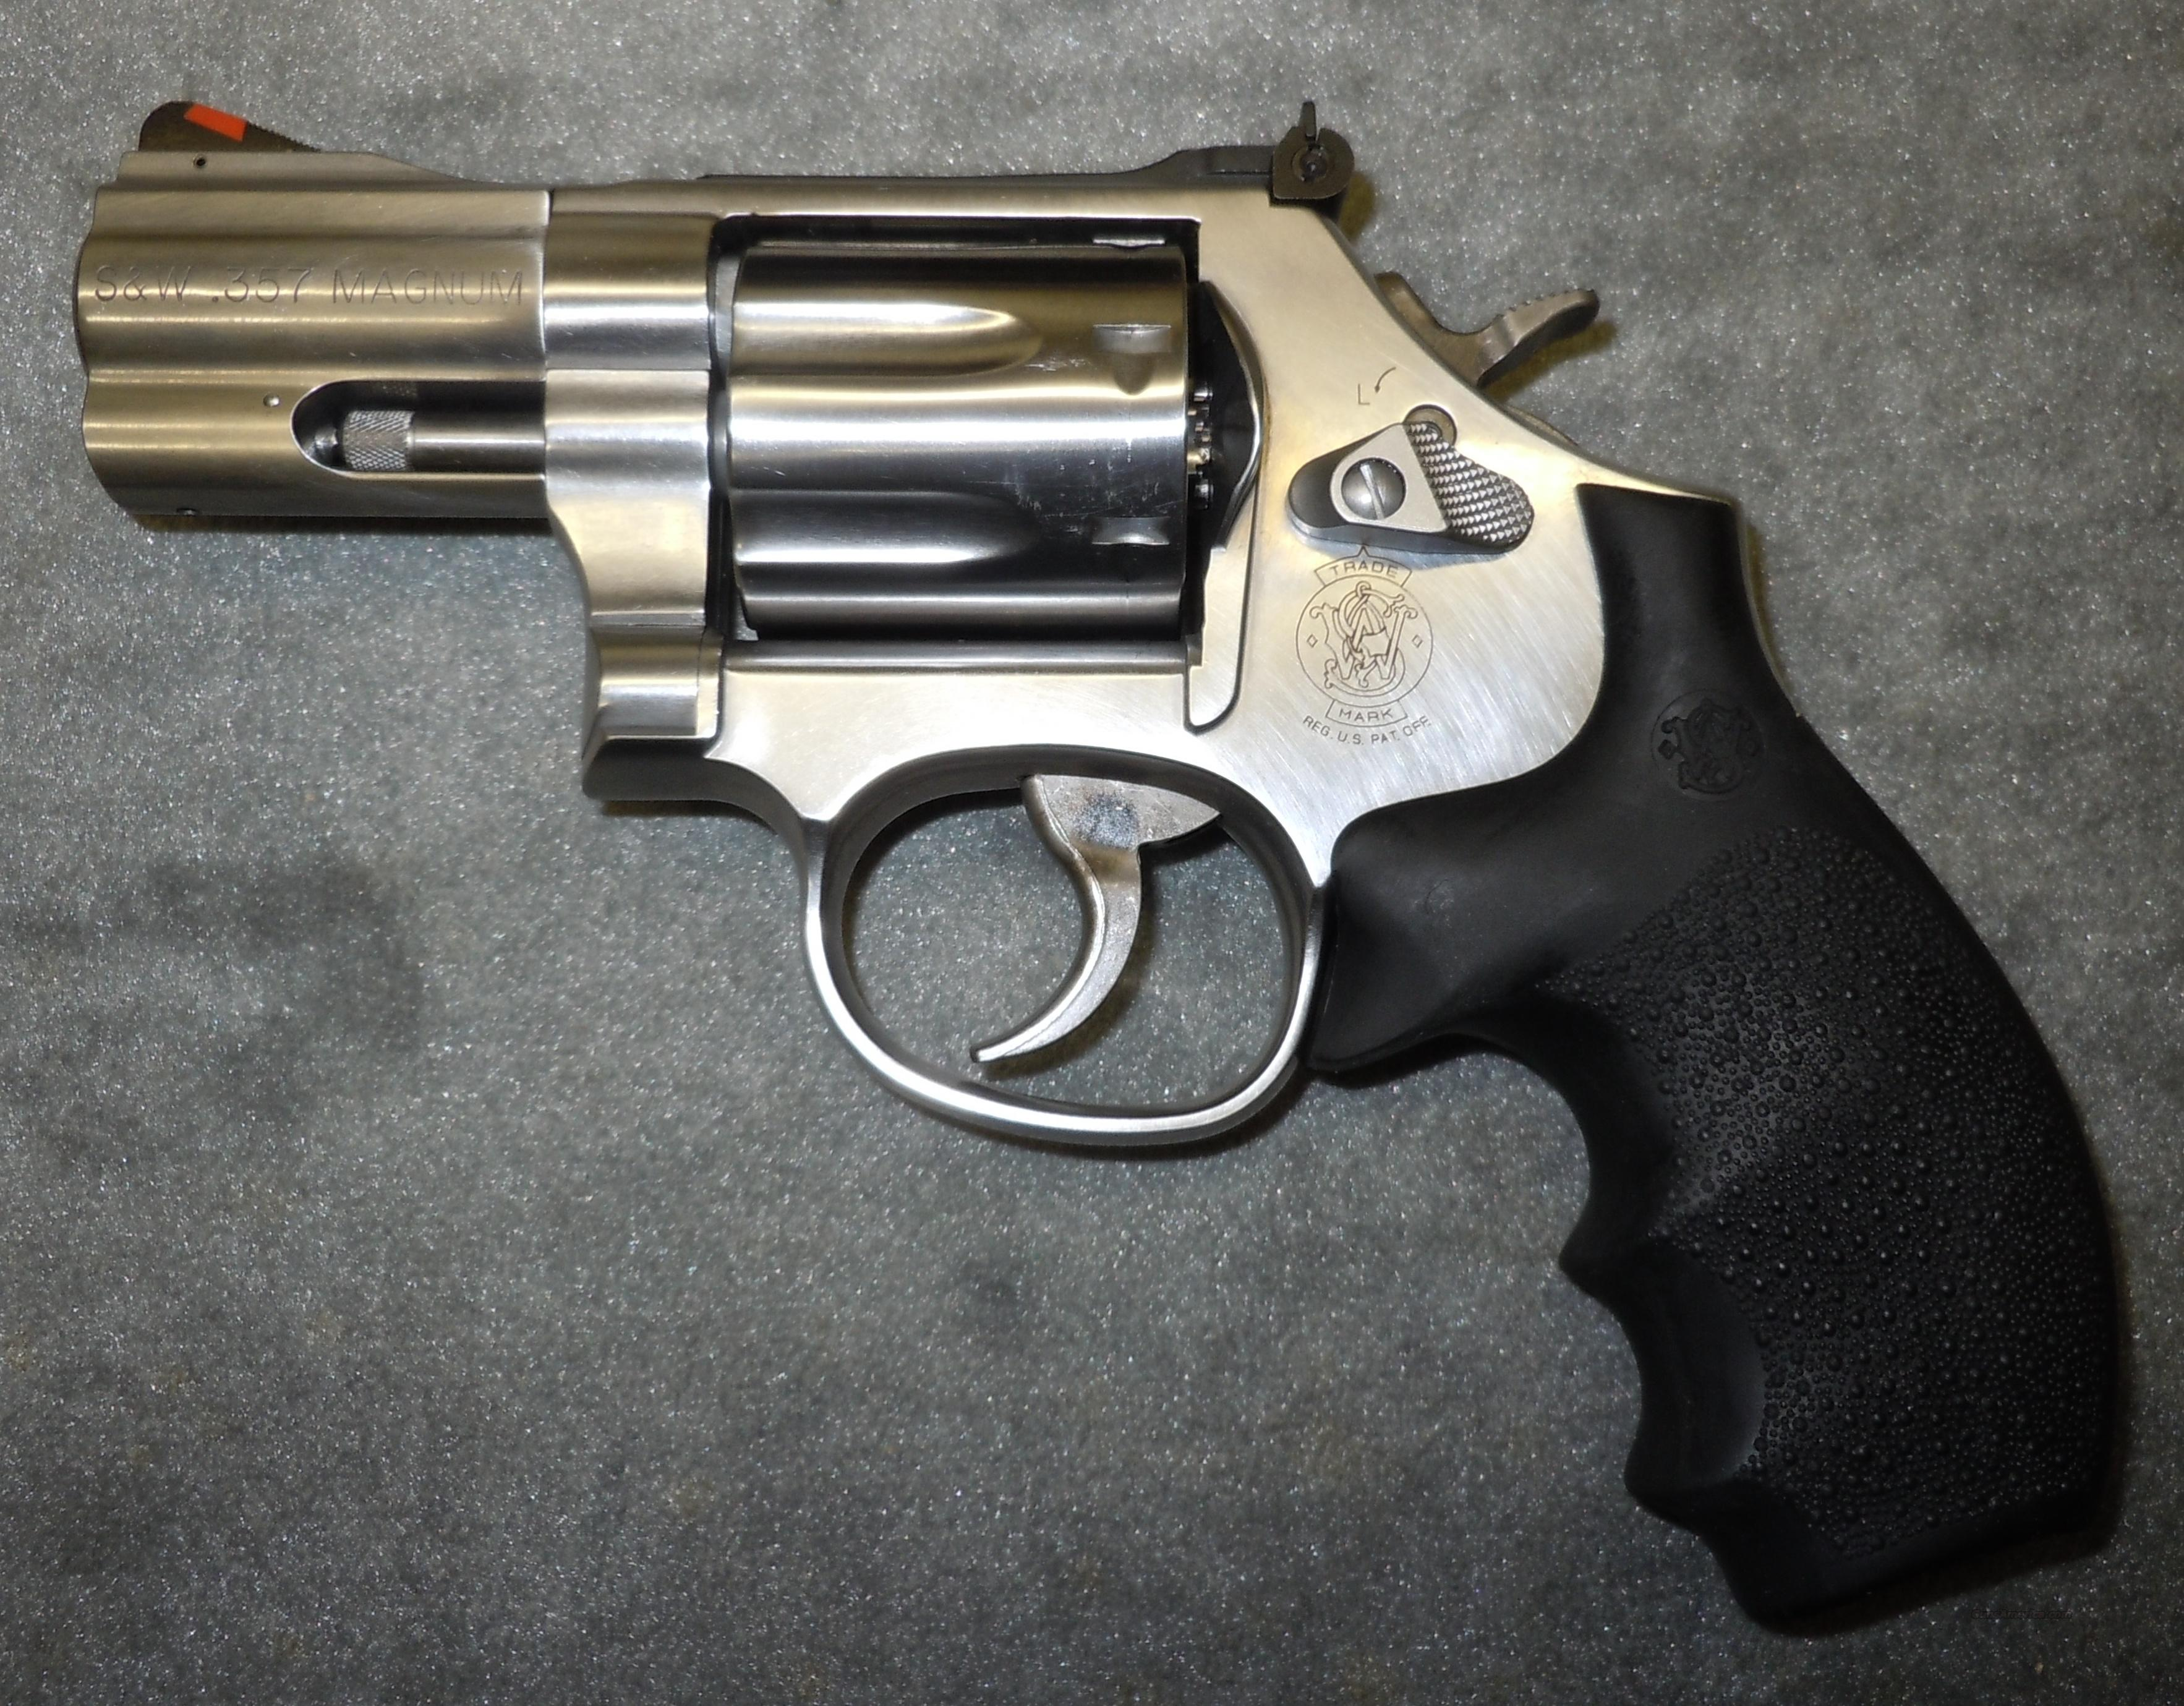 SMITH & WESSON 686 357 MAGNUM 7 SHOT STAINLESS ... for sale